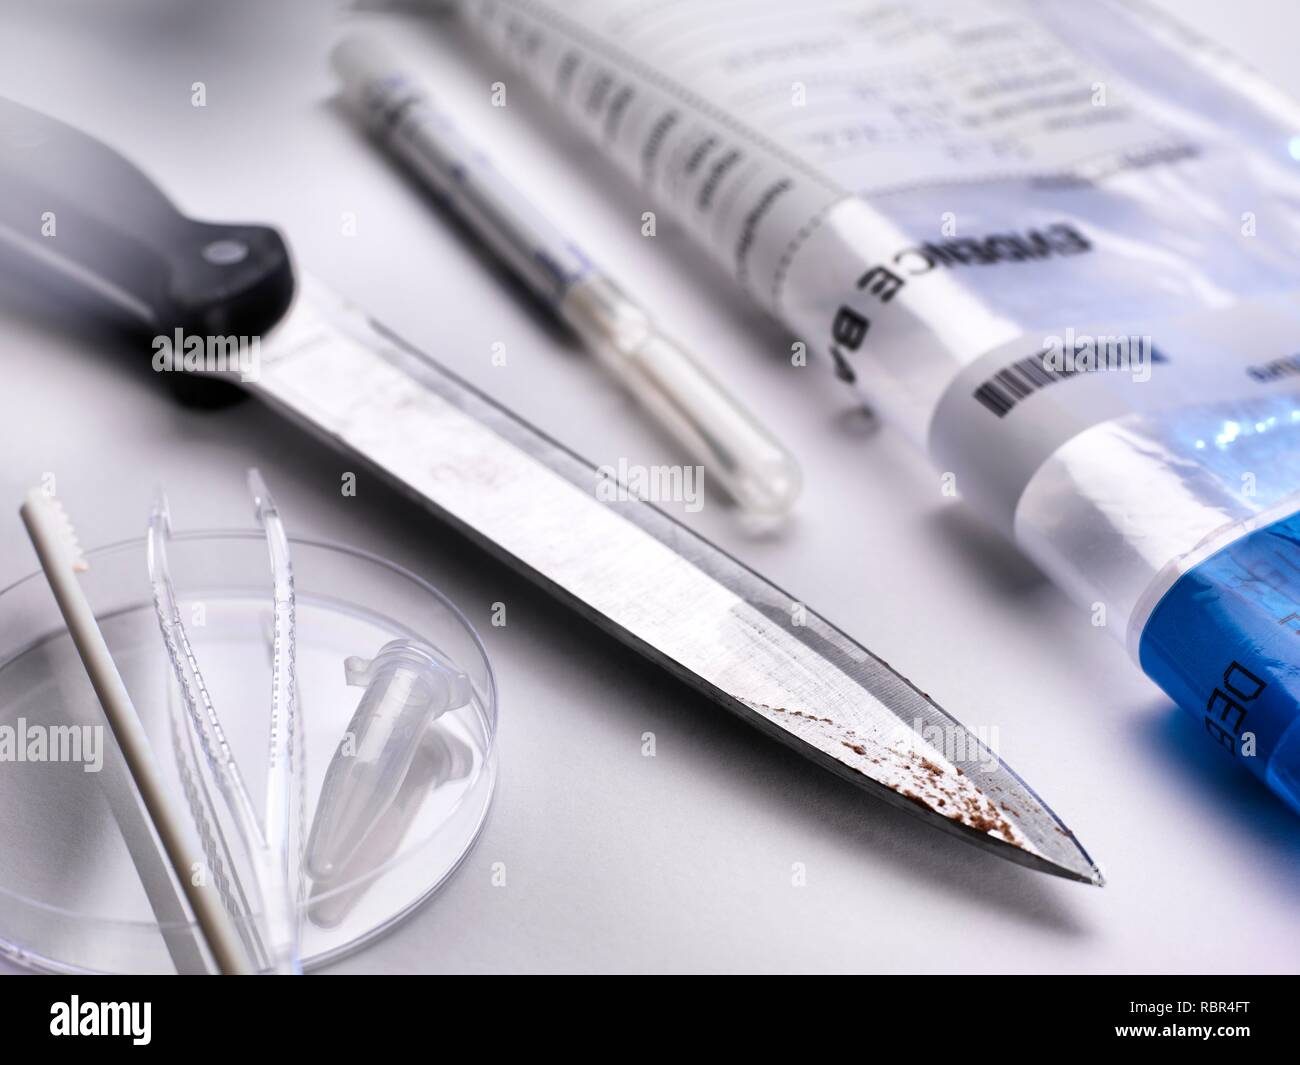 Forensic evidence collection. A knife about to be swabbed for DNA (deoxyribonucleic acid) and other forensic tests. - Stock Image